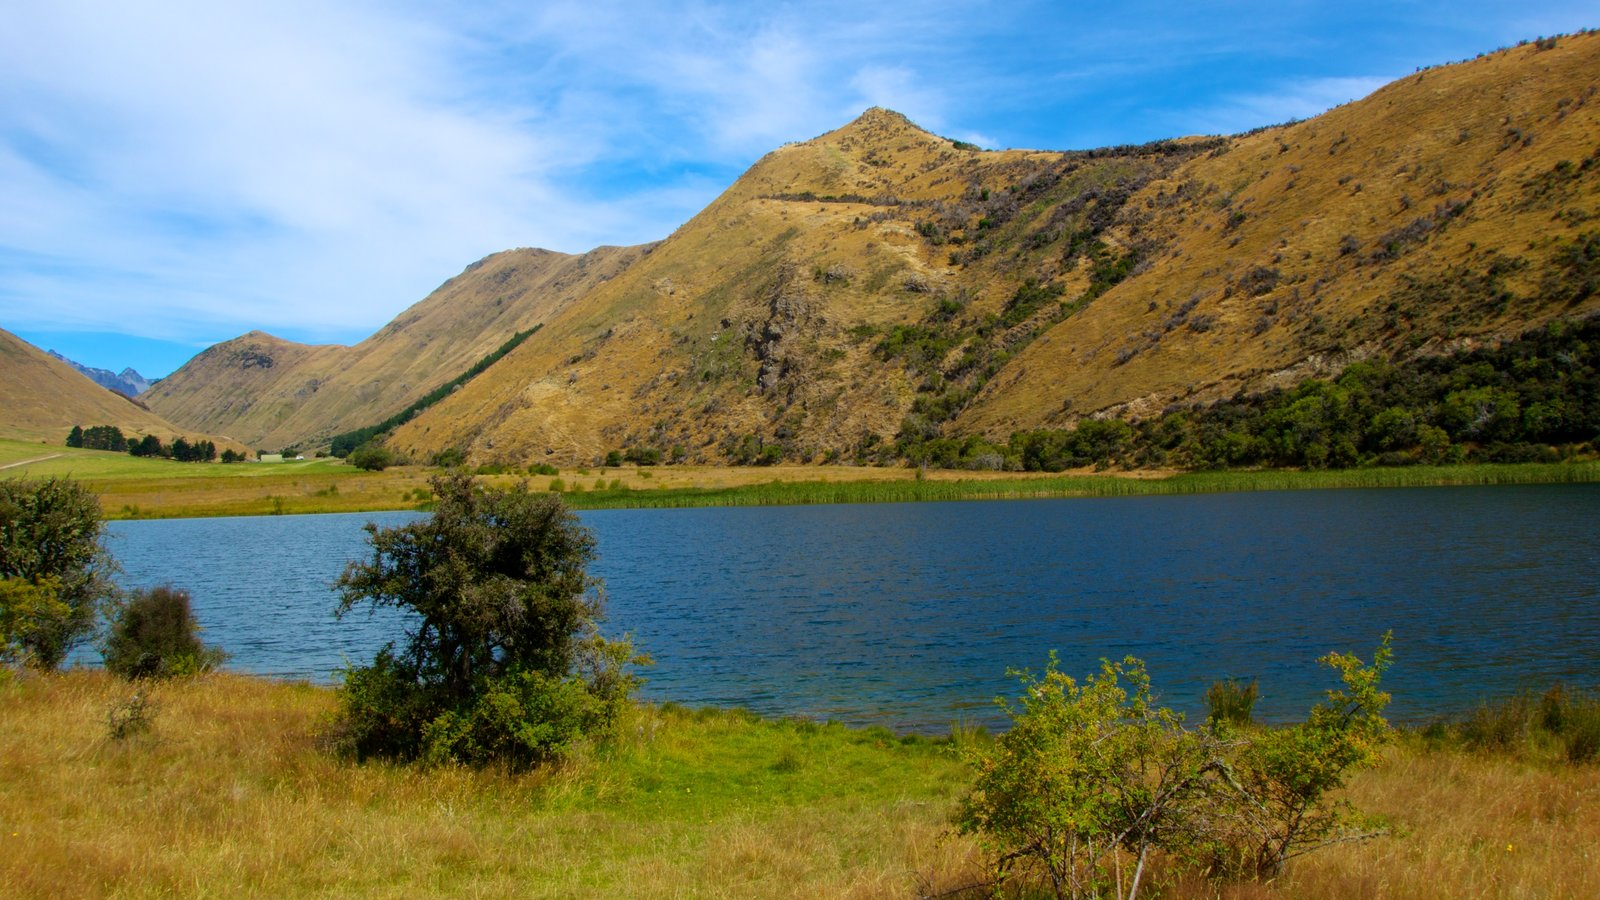 Queenstown showing a lake or waterhole, mountains and landscape views